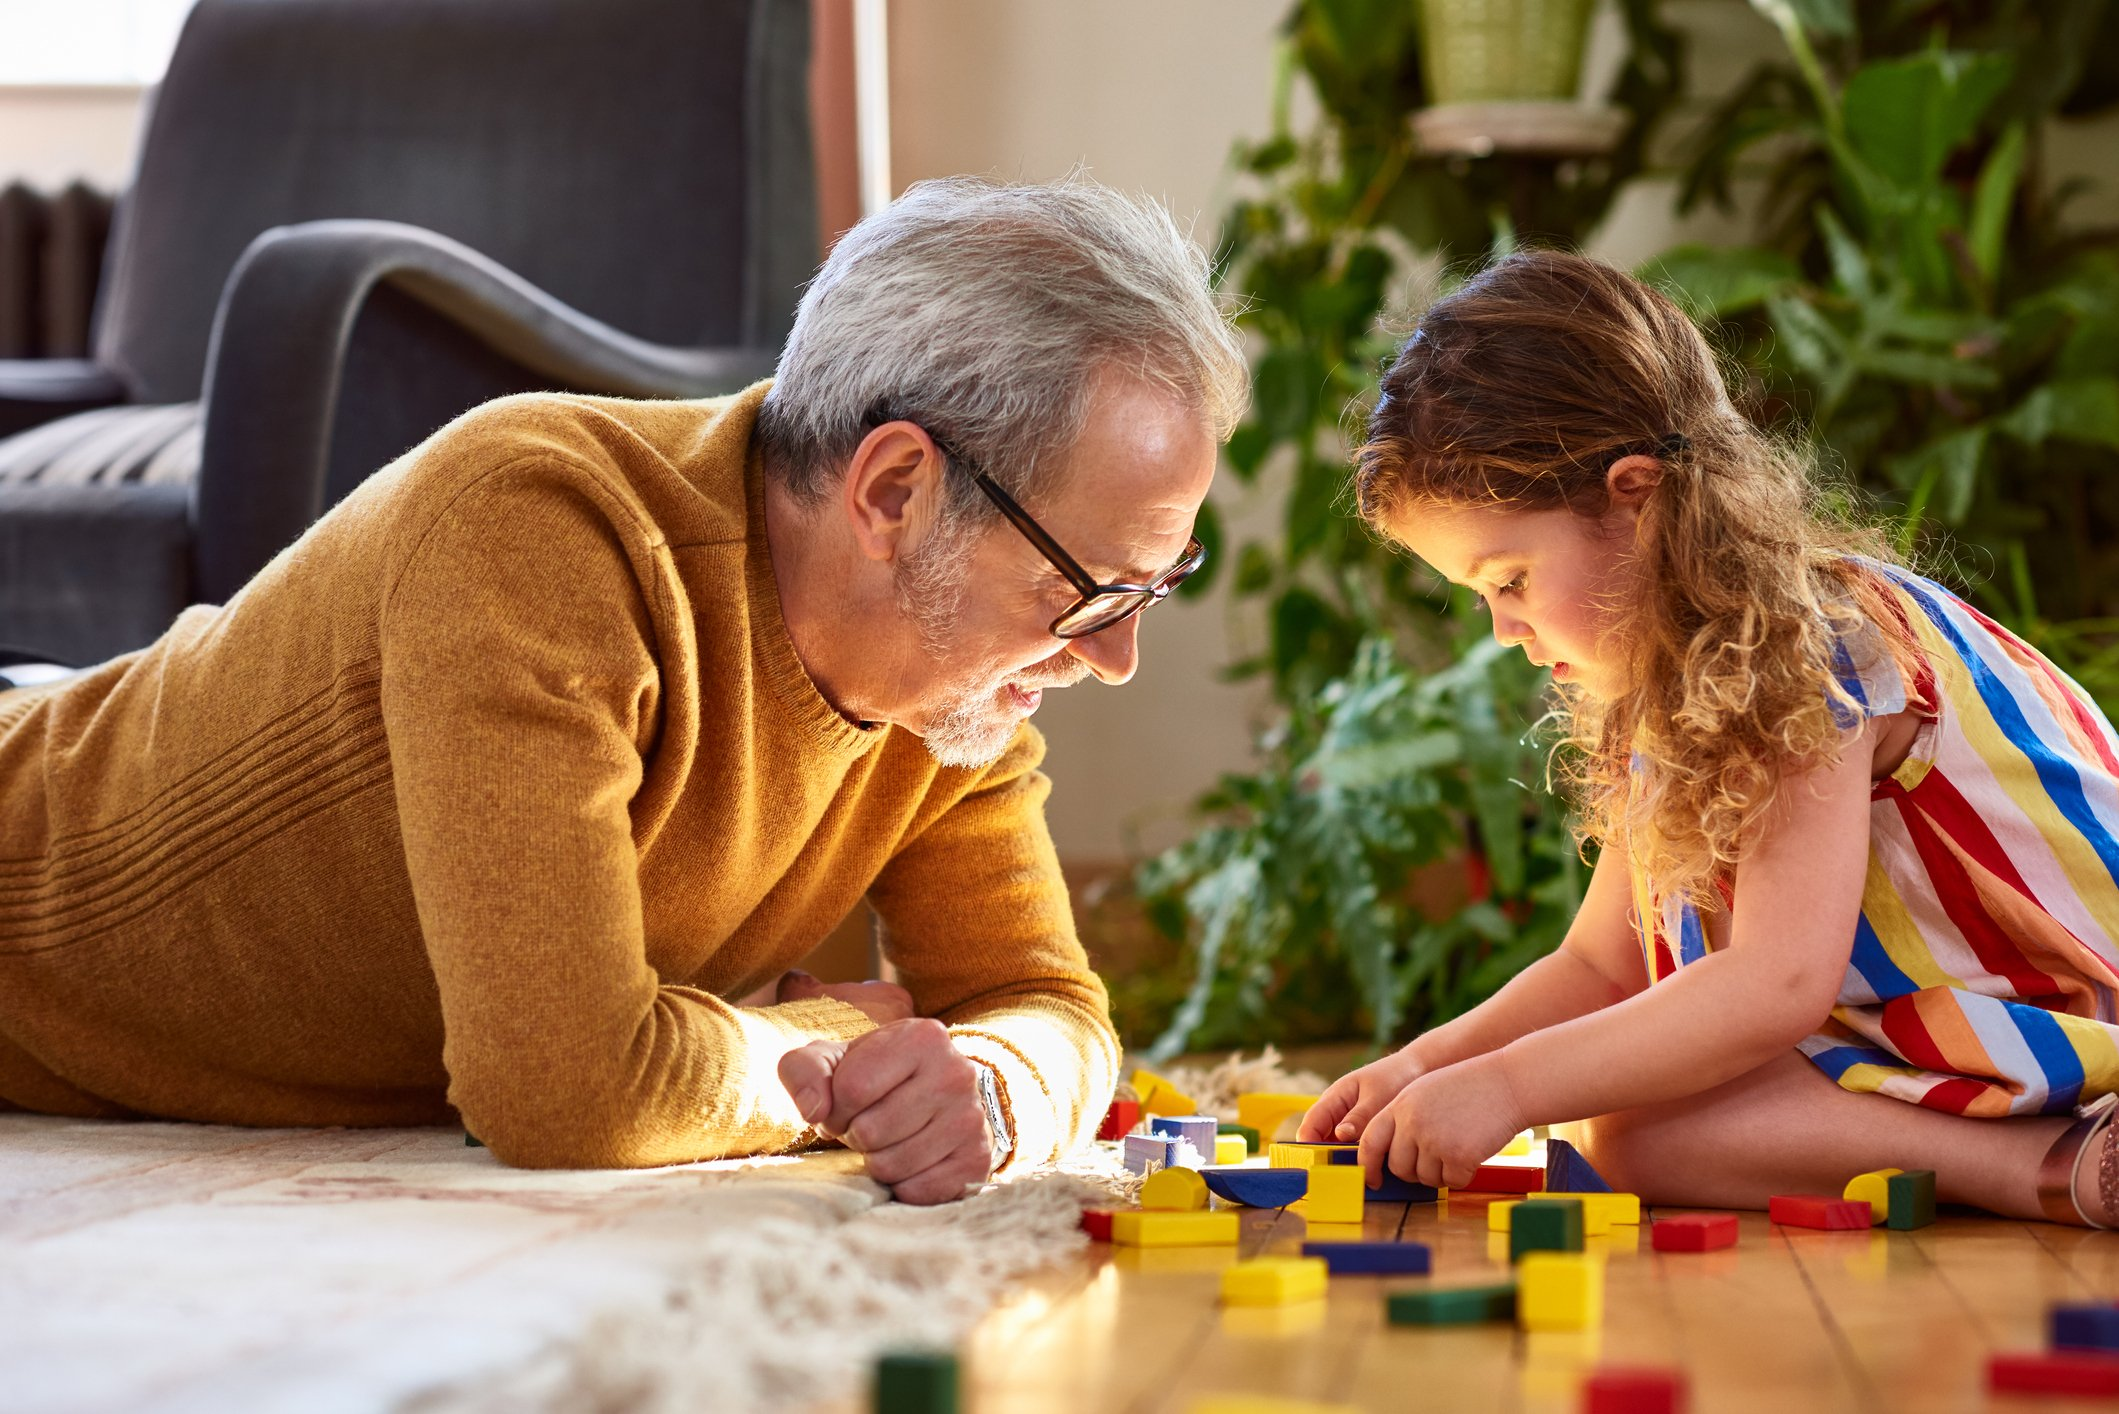 John loved watching his granddaughter play with her toys.   Photo: Getty Images